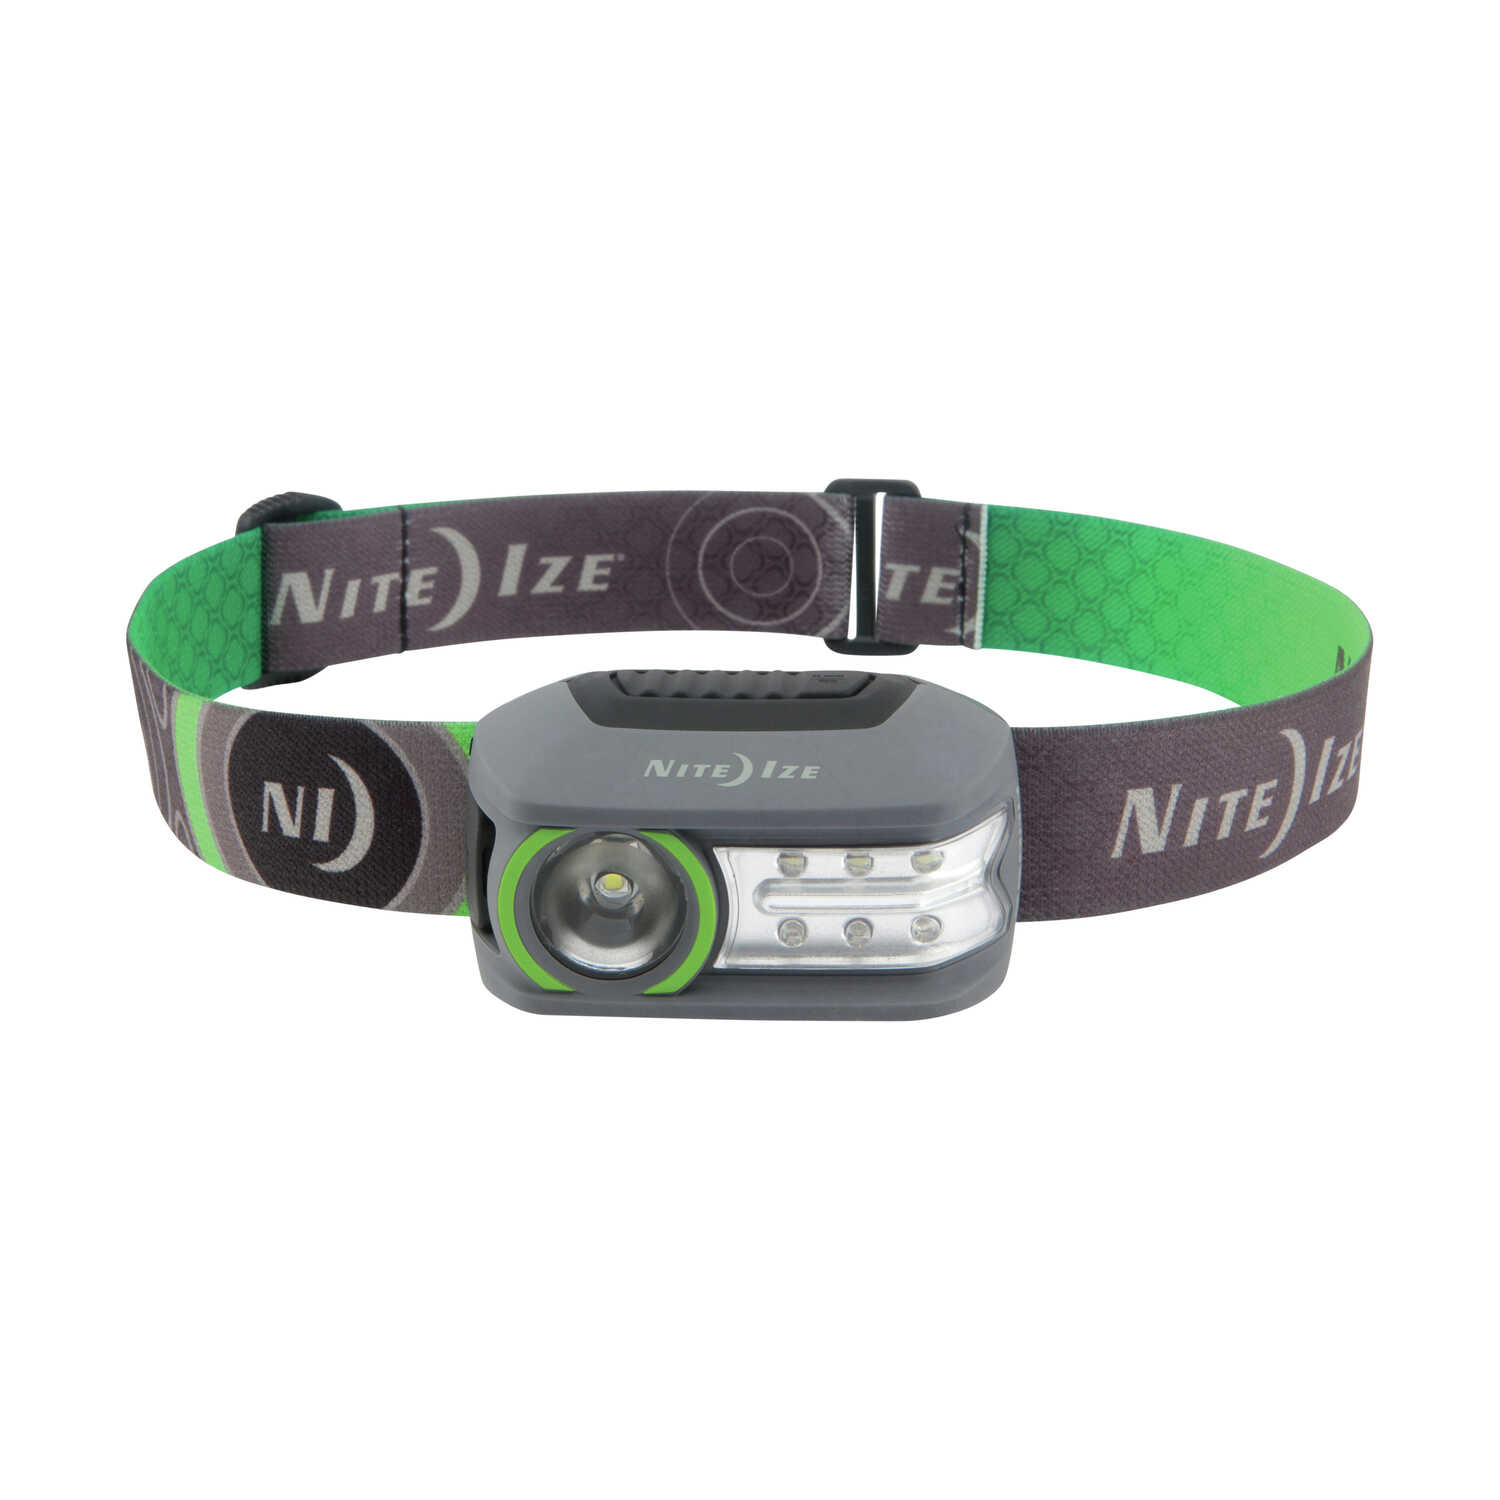 Nite Ize  Radiant  250 lumens Gray/Green  LED  Head Lamp  LifePO4 Battery